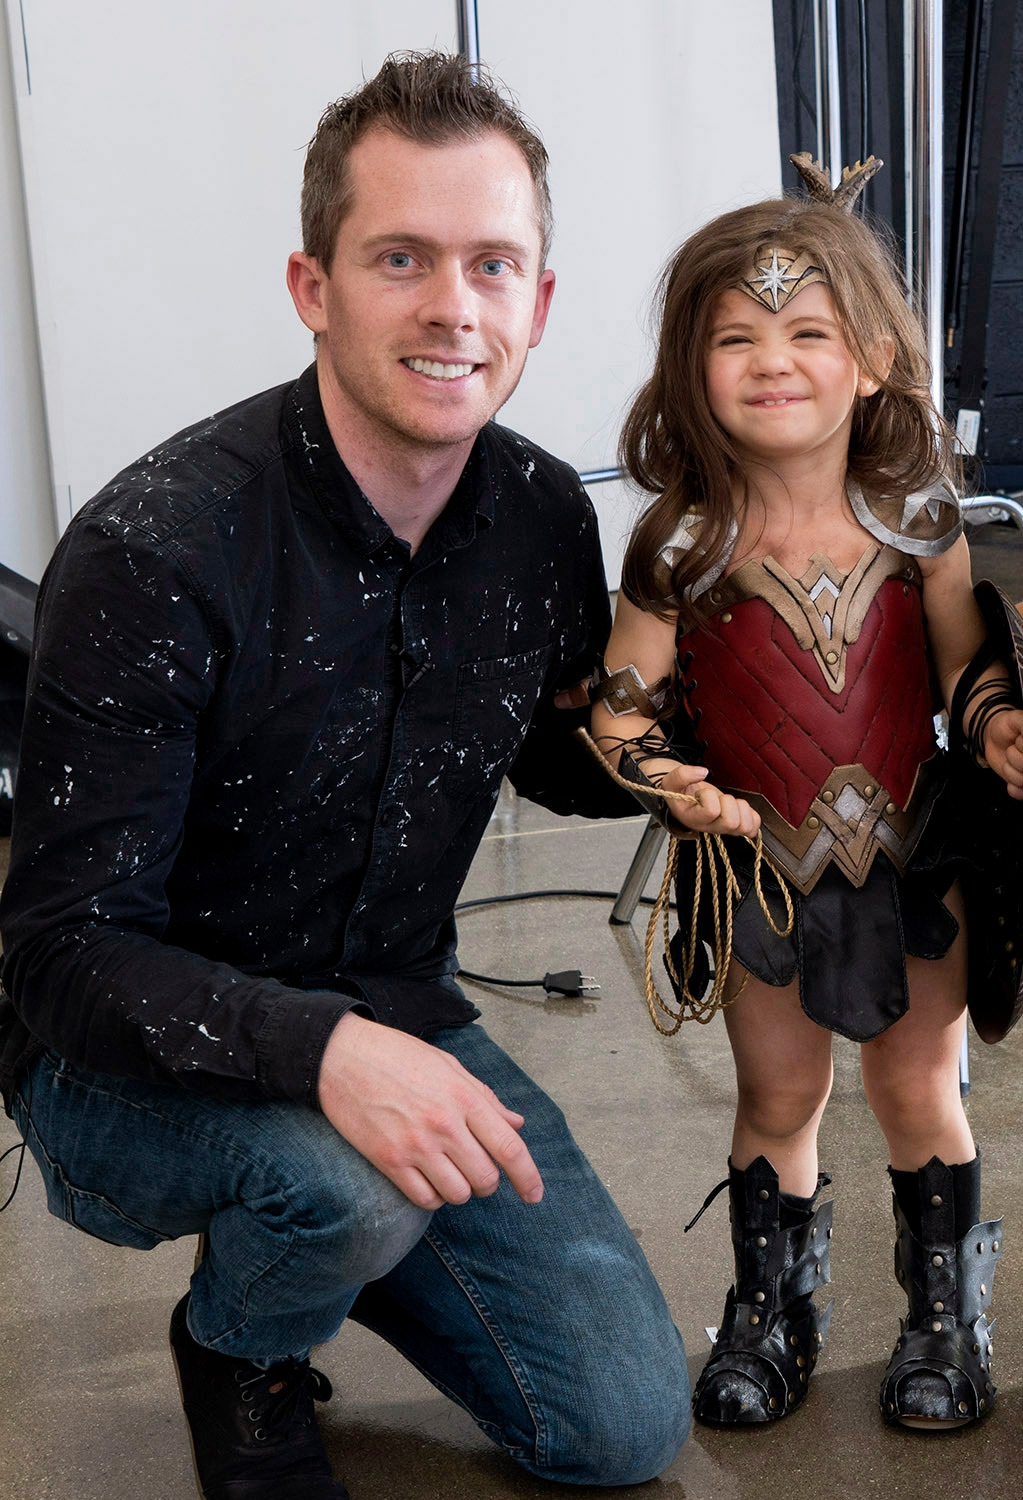 Utah Dad Josh Rossi Spends $1,500 on 3-Year-Old Daughter's 'Wonder Woman' Halloween Costume to Spread Message That 'Girls Can Do Anything' 10/28/16 Josh Rossi